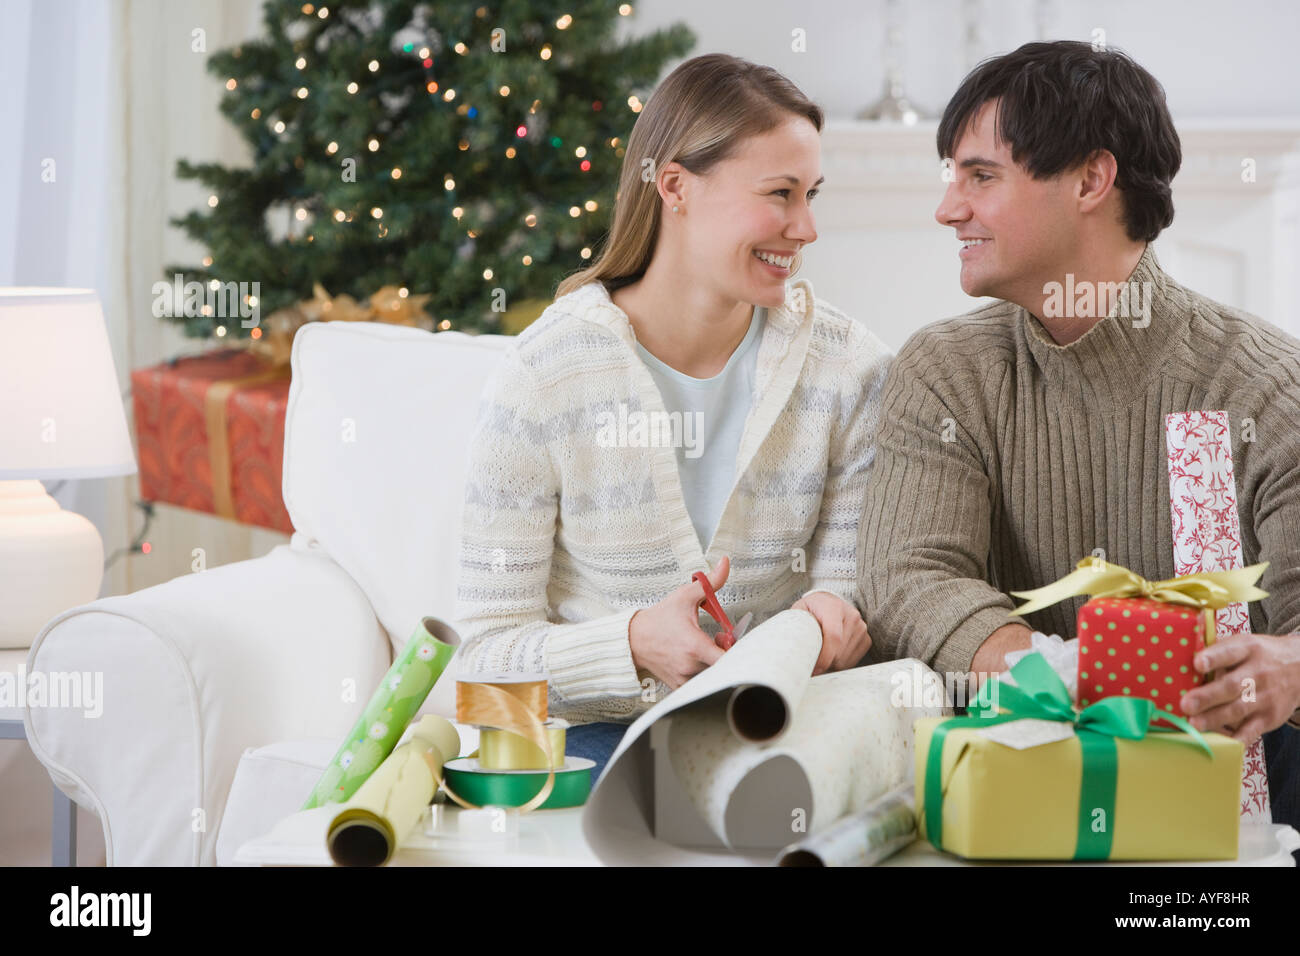 Couple wrapping Christmas gifts - Stock Image